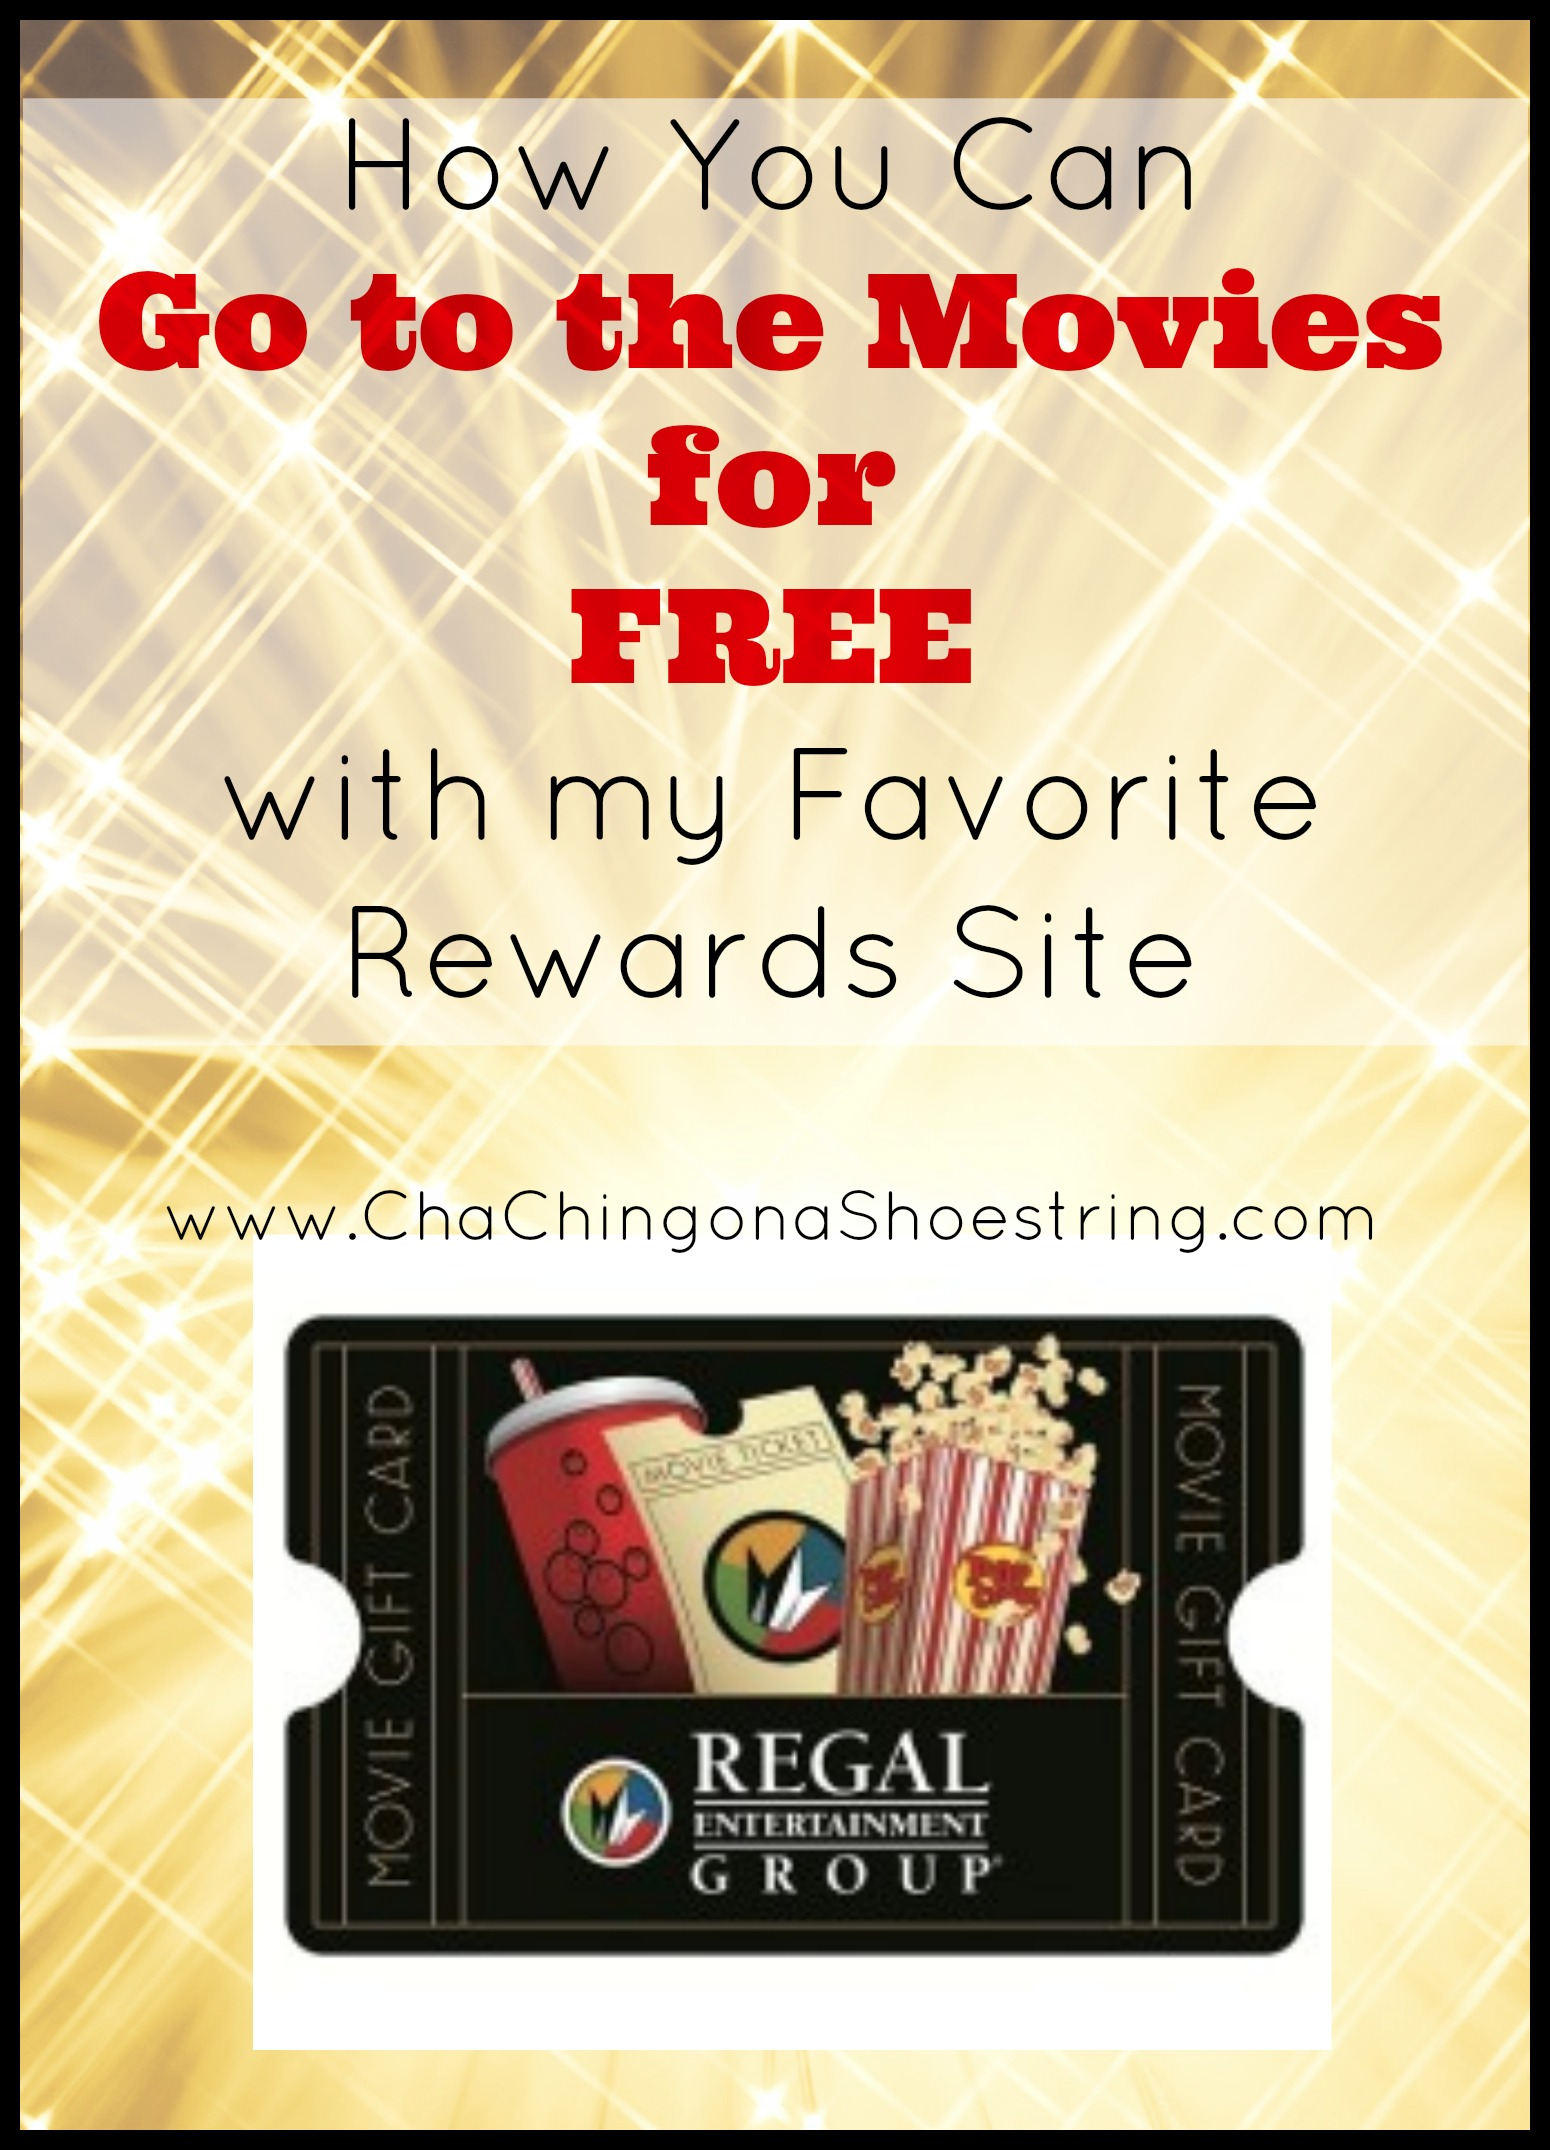 How You Can Go to the Movies for Free